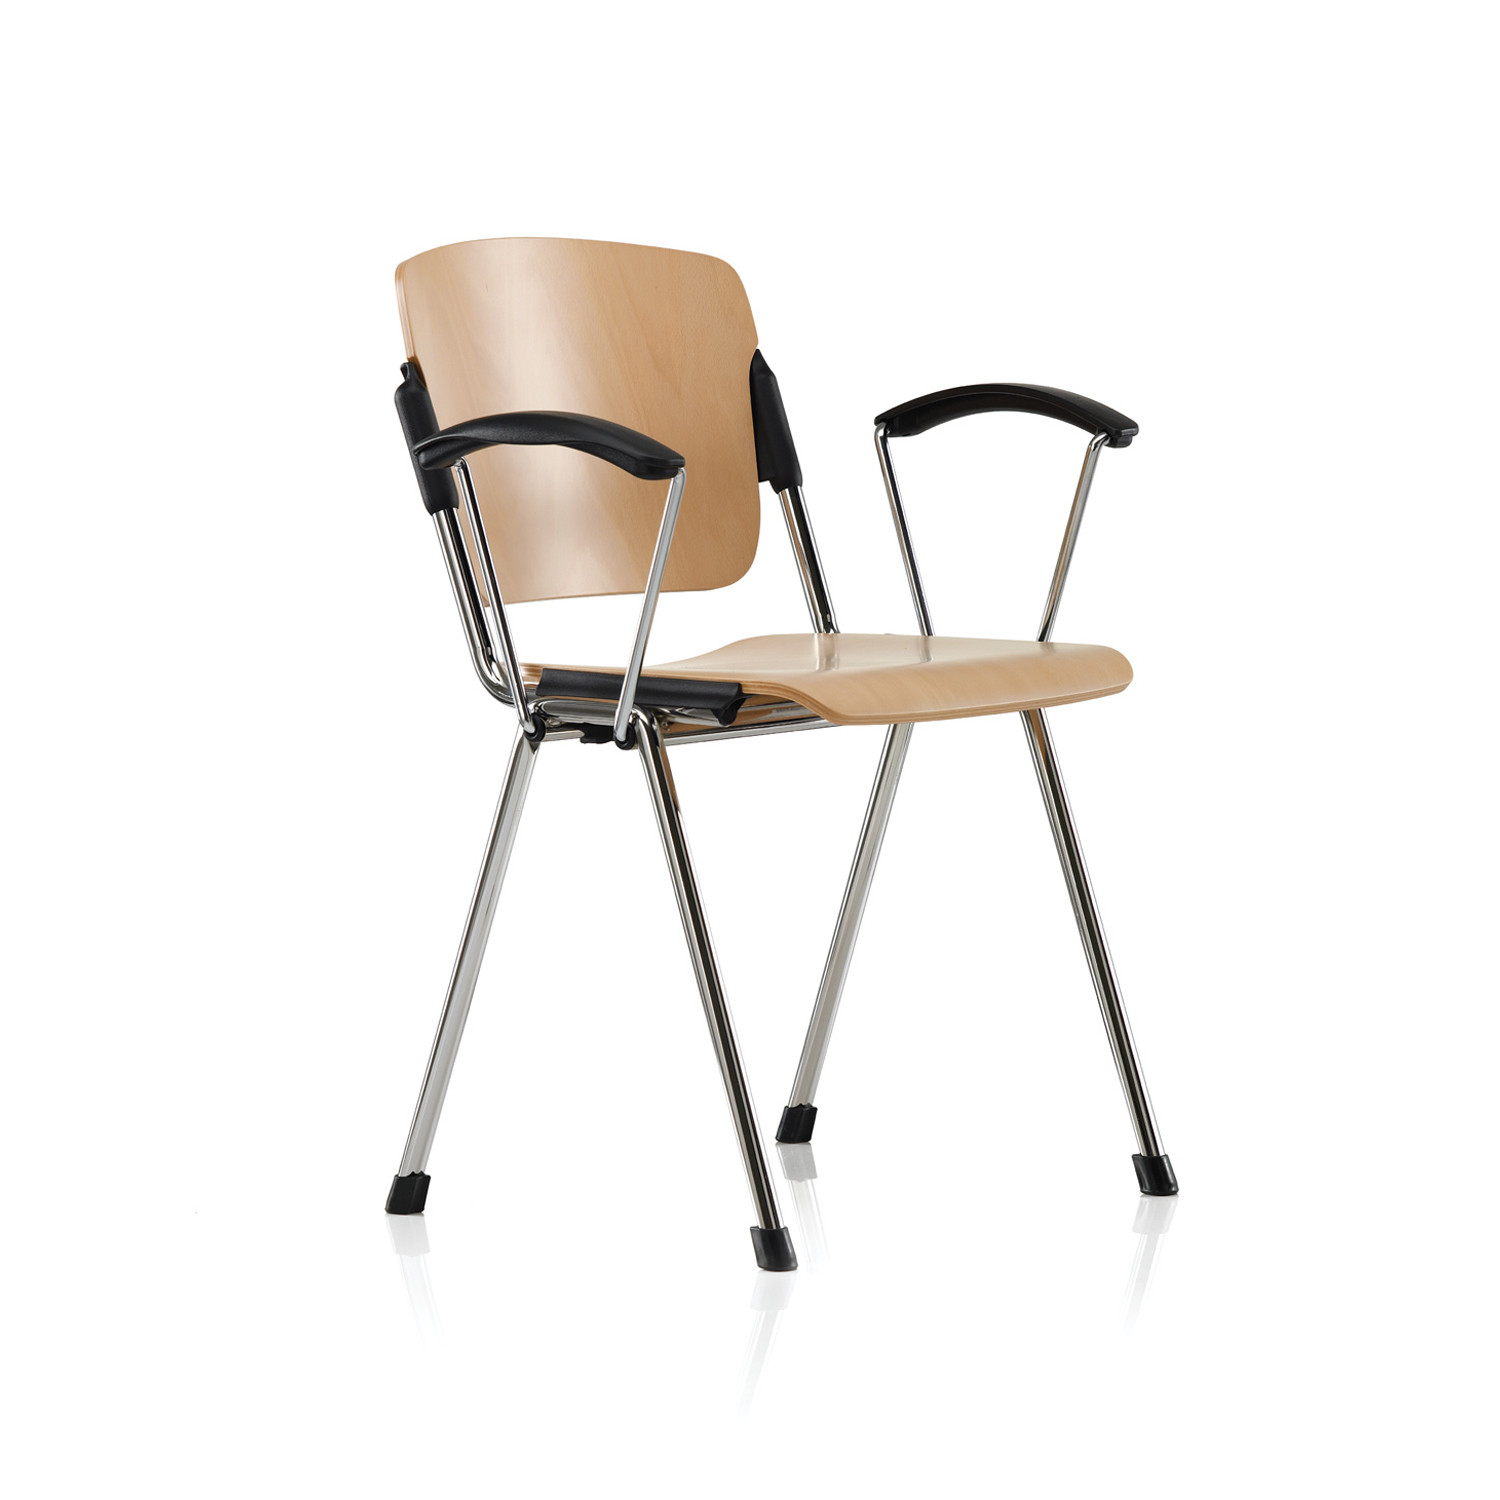 Series 8000 Stacking Chairs by Pledge